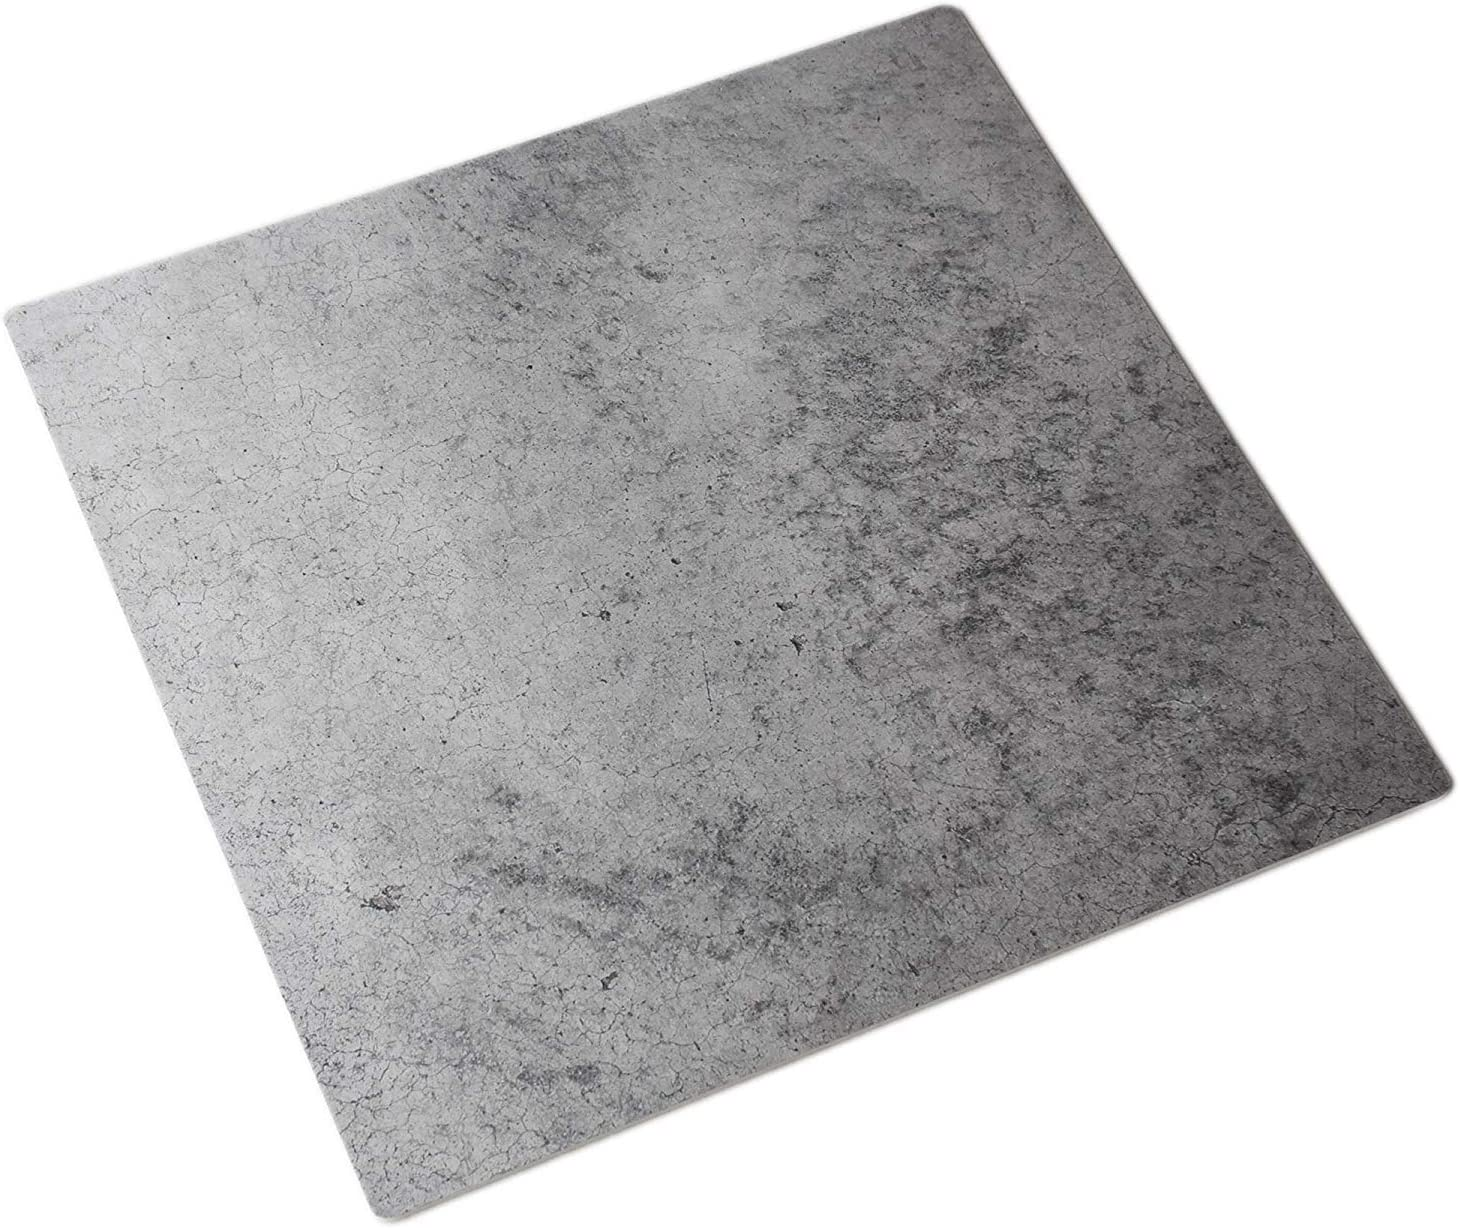 High material Bessie Bakes Bombing new work 20-inch x Replicated Concrete Gray Photogra